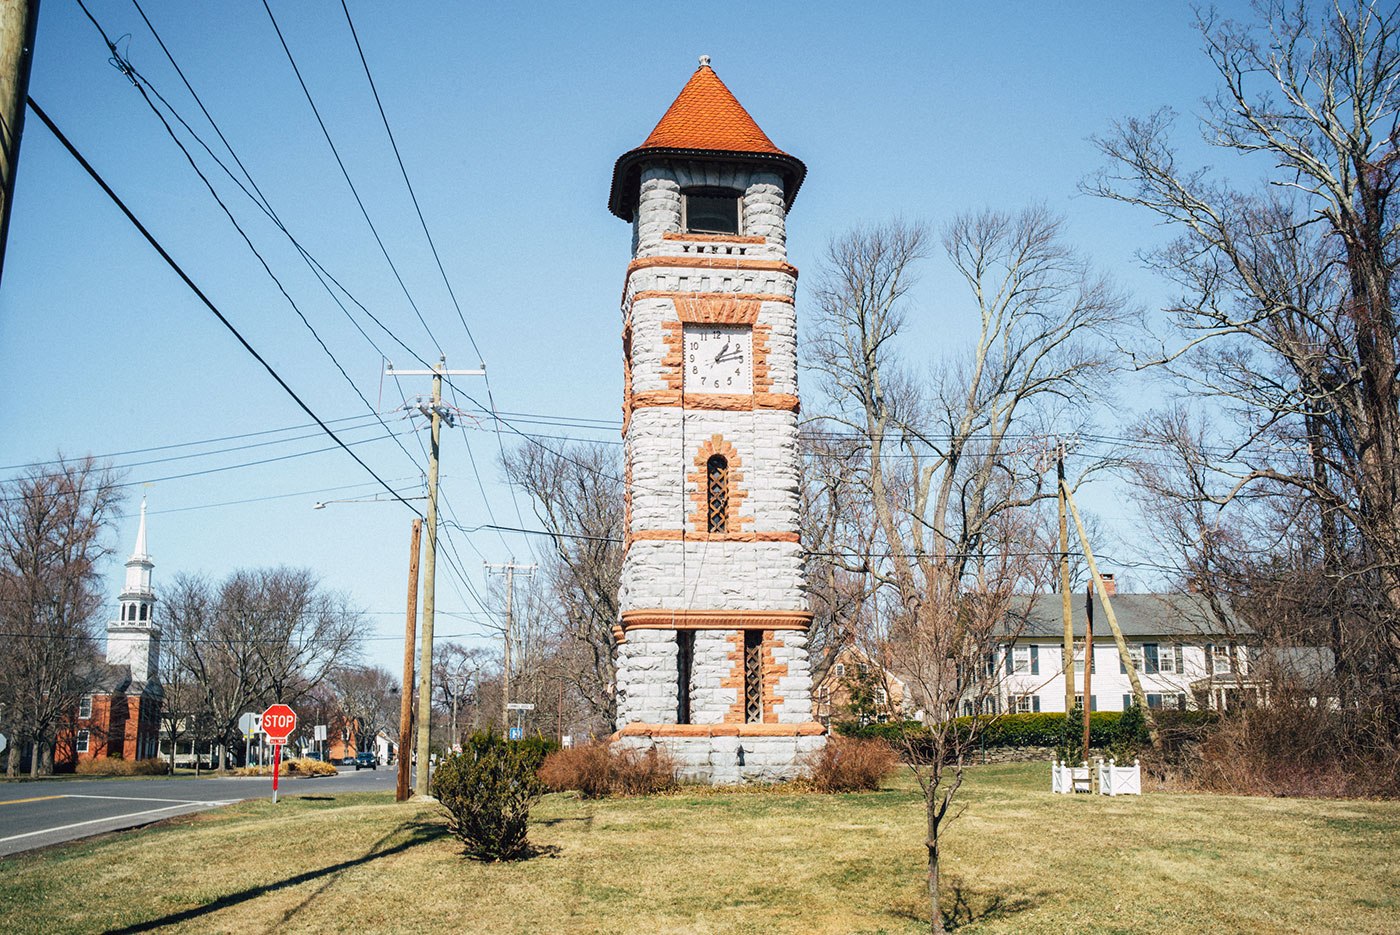 The Historic District Commission helps maintain the historical and architectural integrity